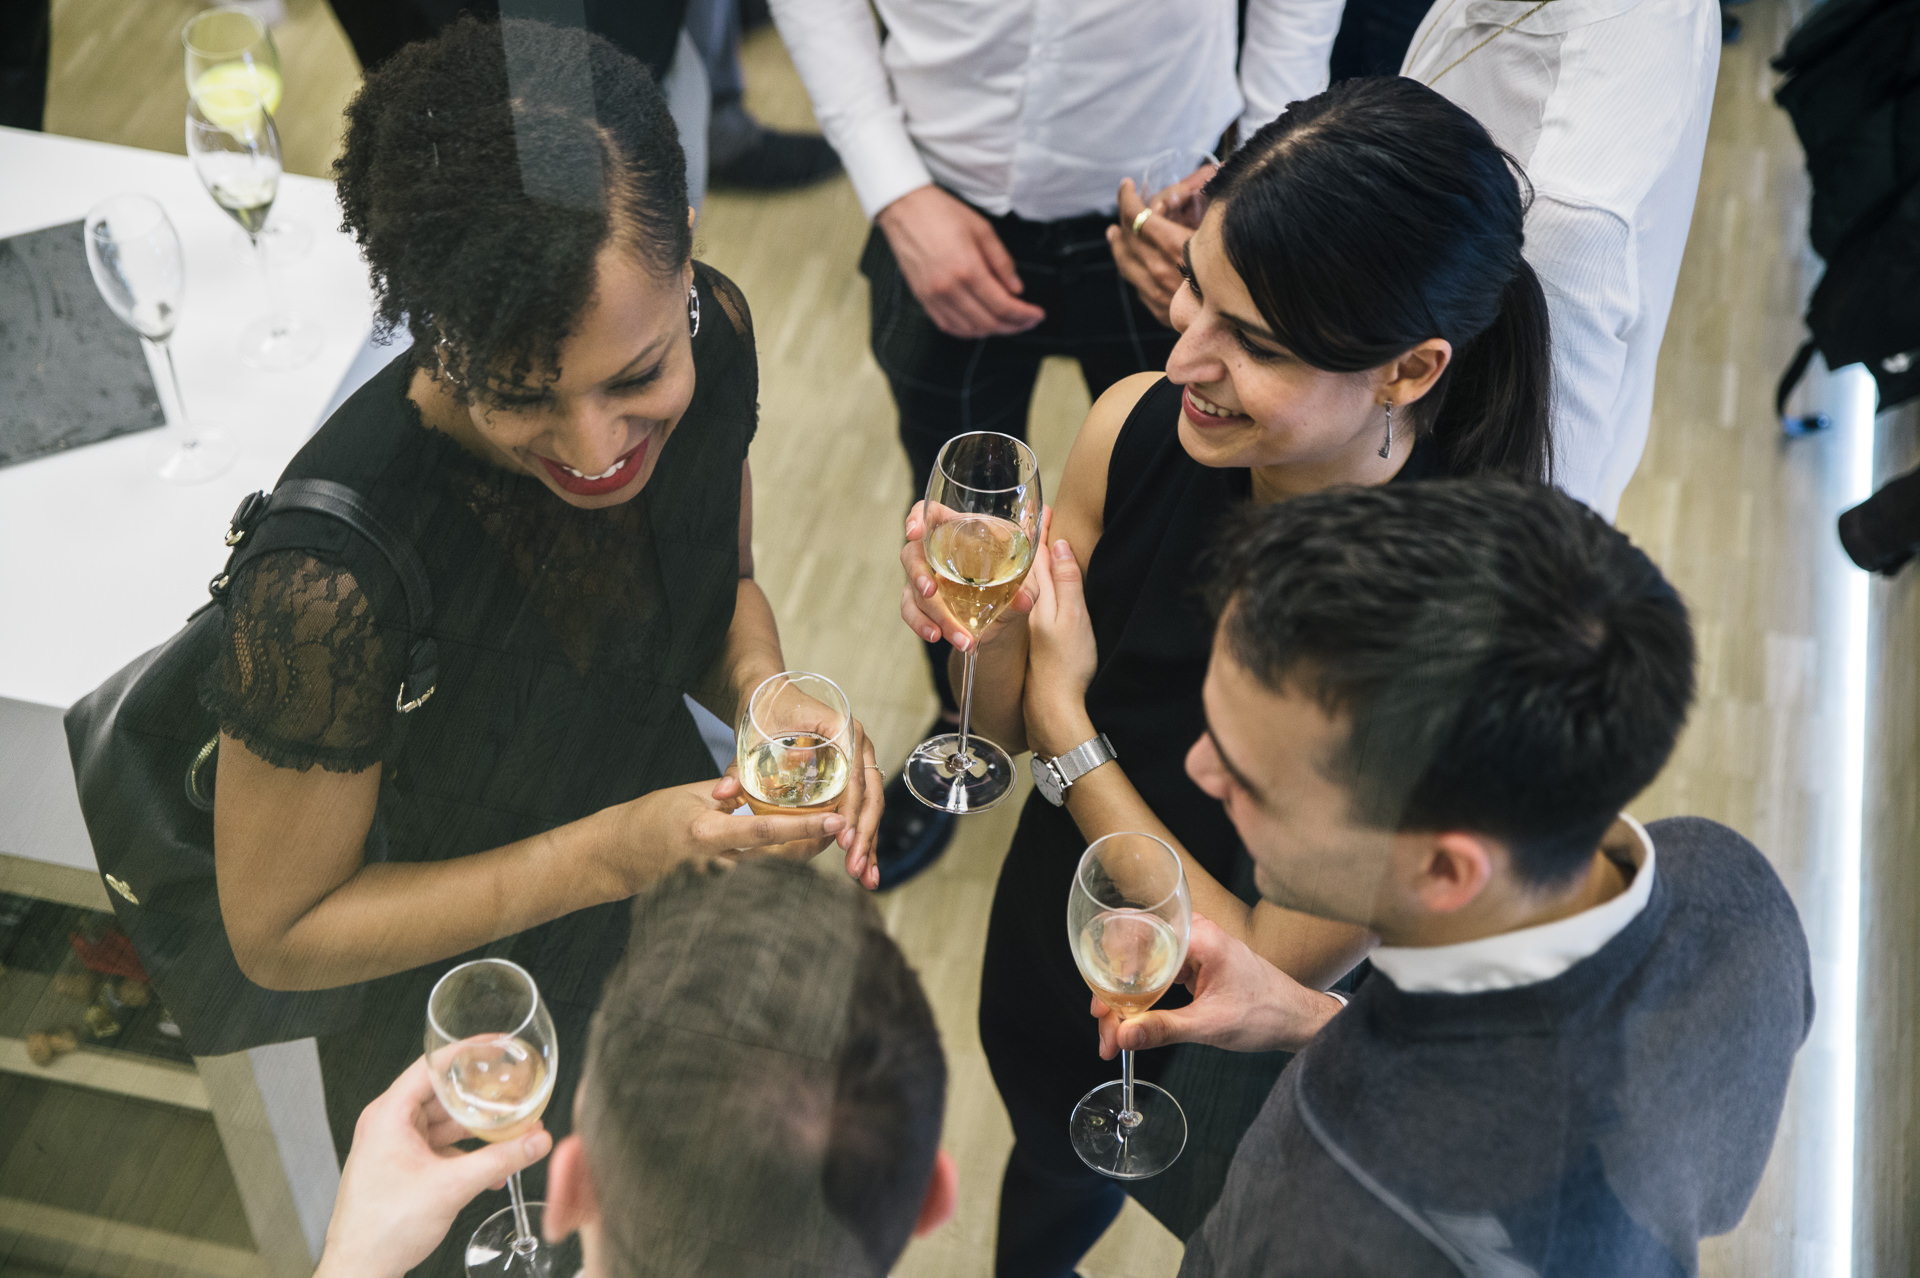 4 people having a champagne during an event